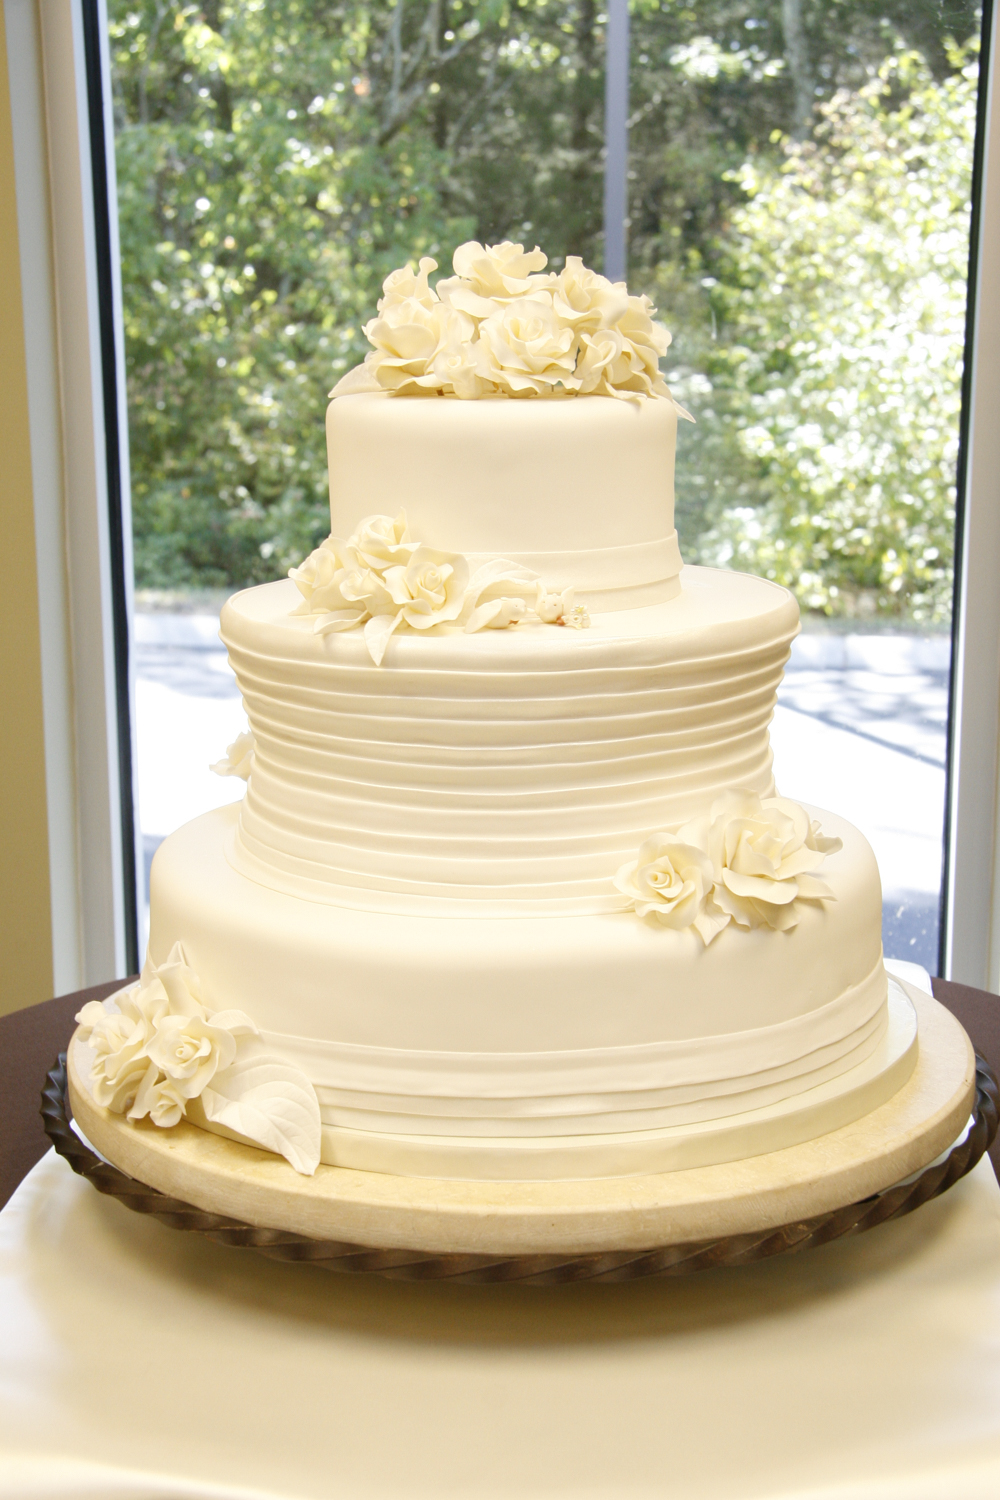 This ain\'t your momma\'s cake! — A Catered Affair: Nashville Wedding ...